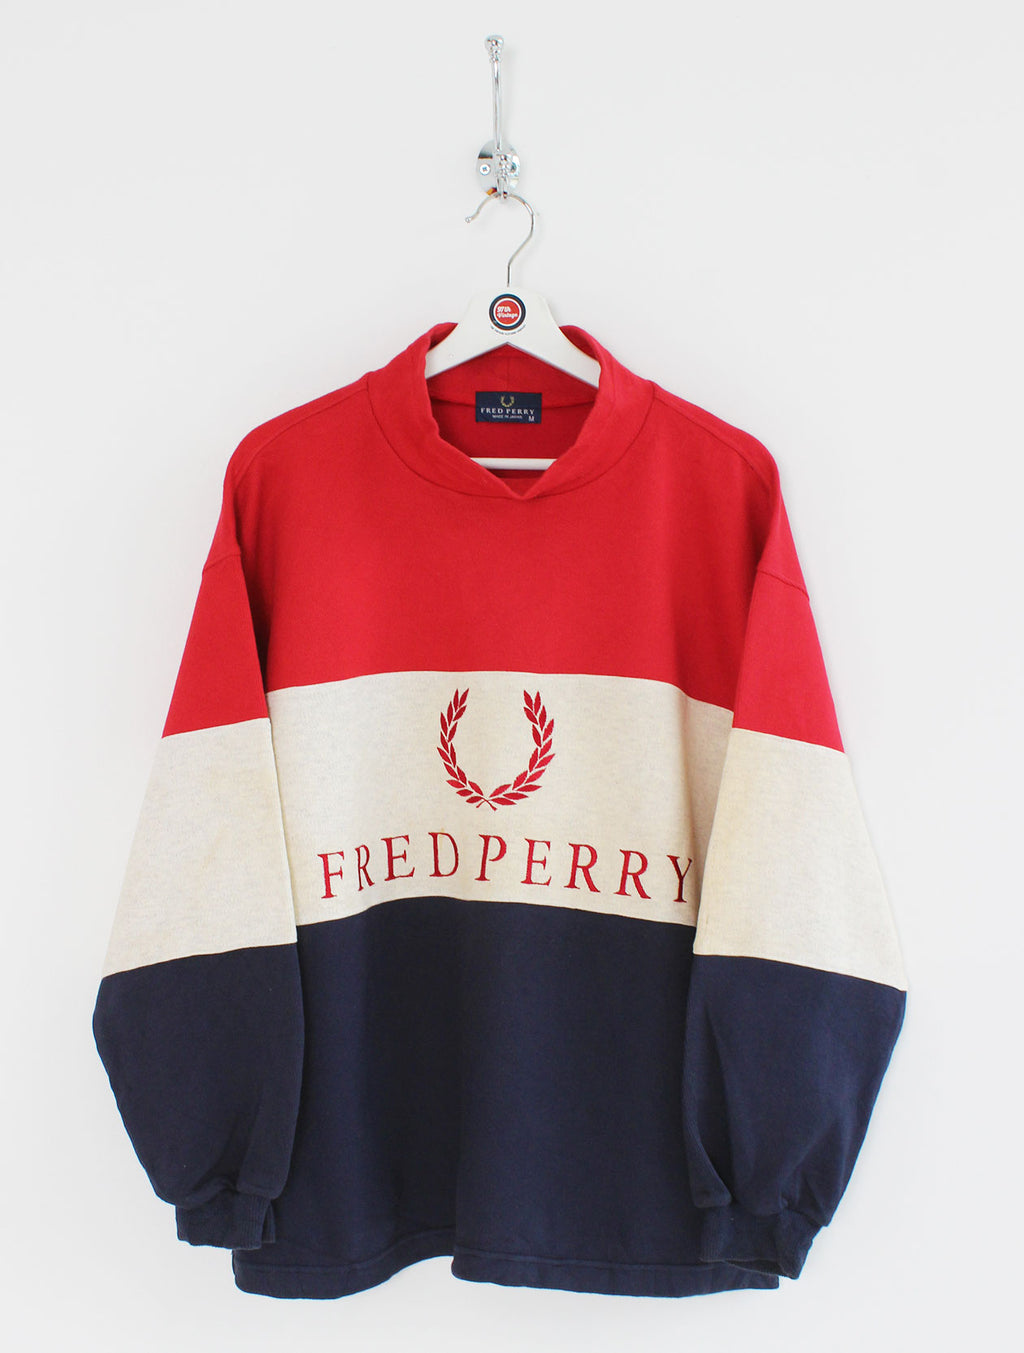 Fred Perry Sweatshirt (M)